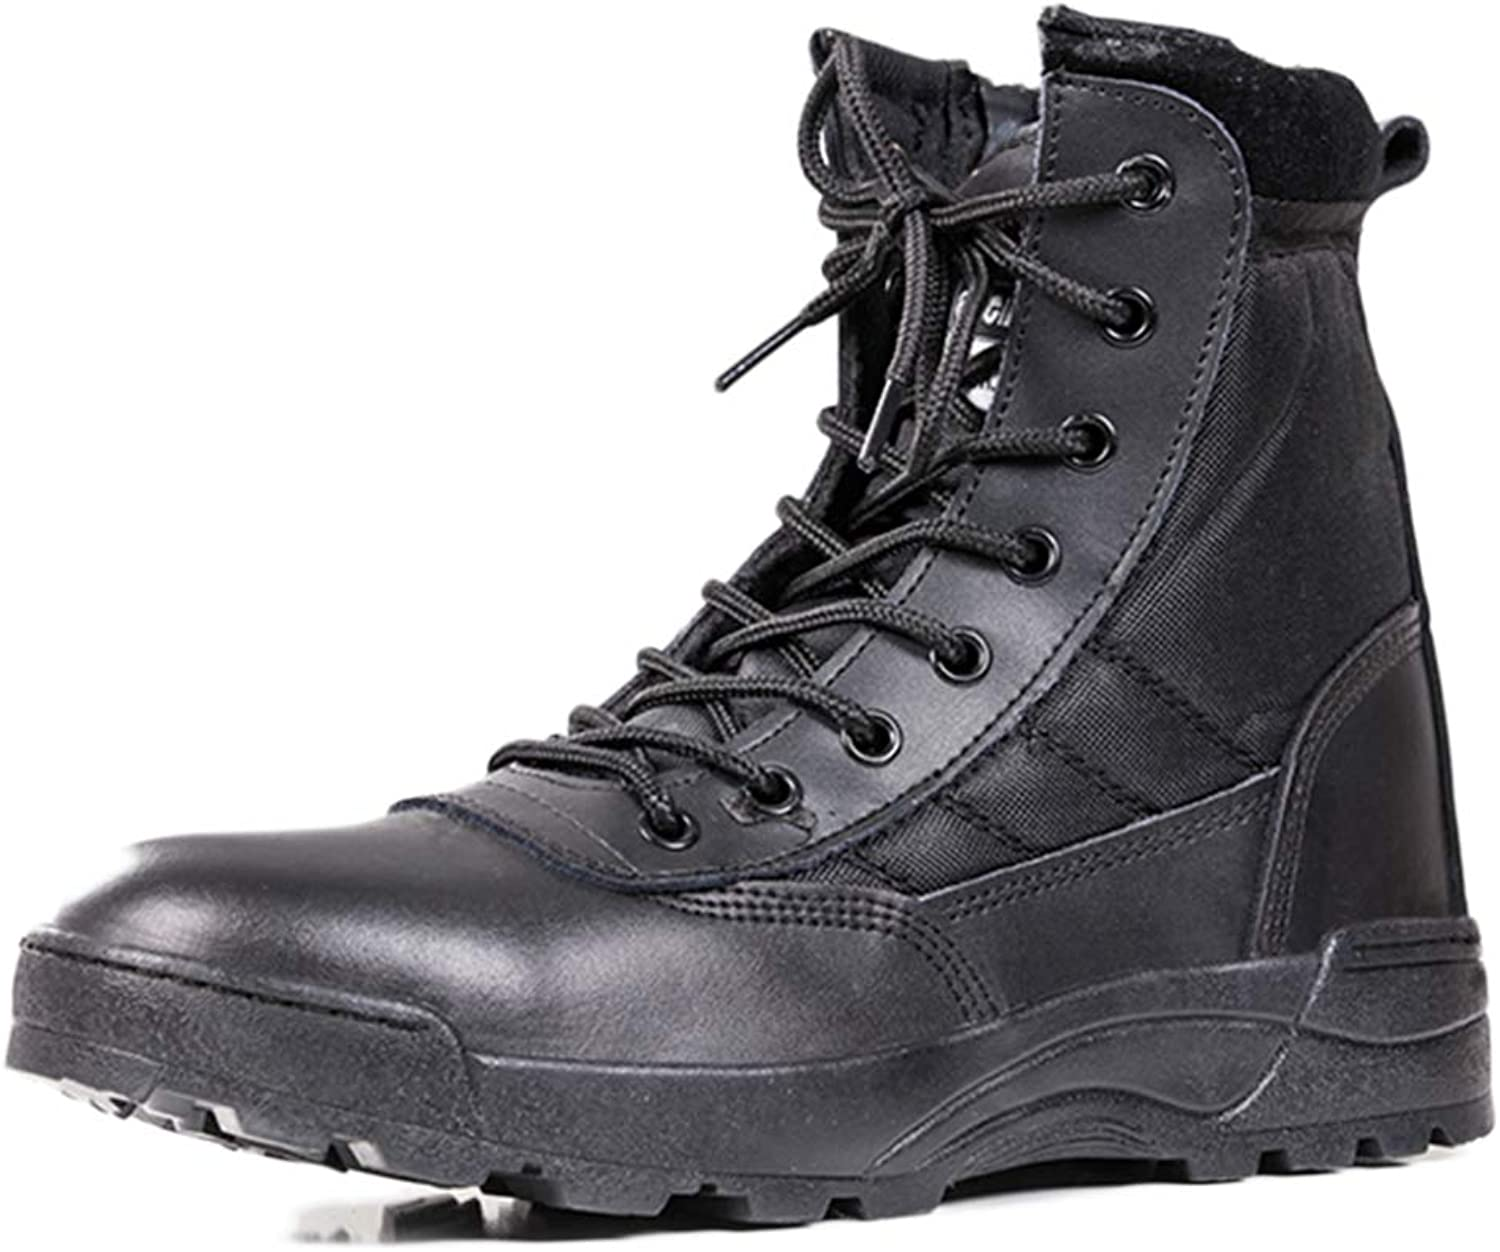 Men's Lace Ups Combat Boots Outdoor High Tops Army Military Boots Tactical Boots Camping Climbing shoes Special Forces Ankle Boot